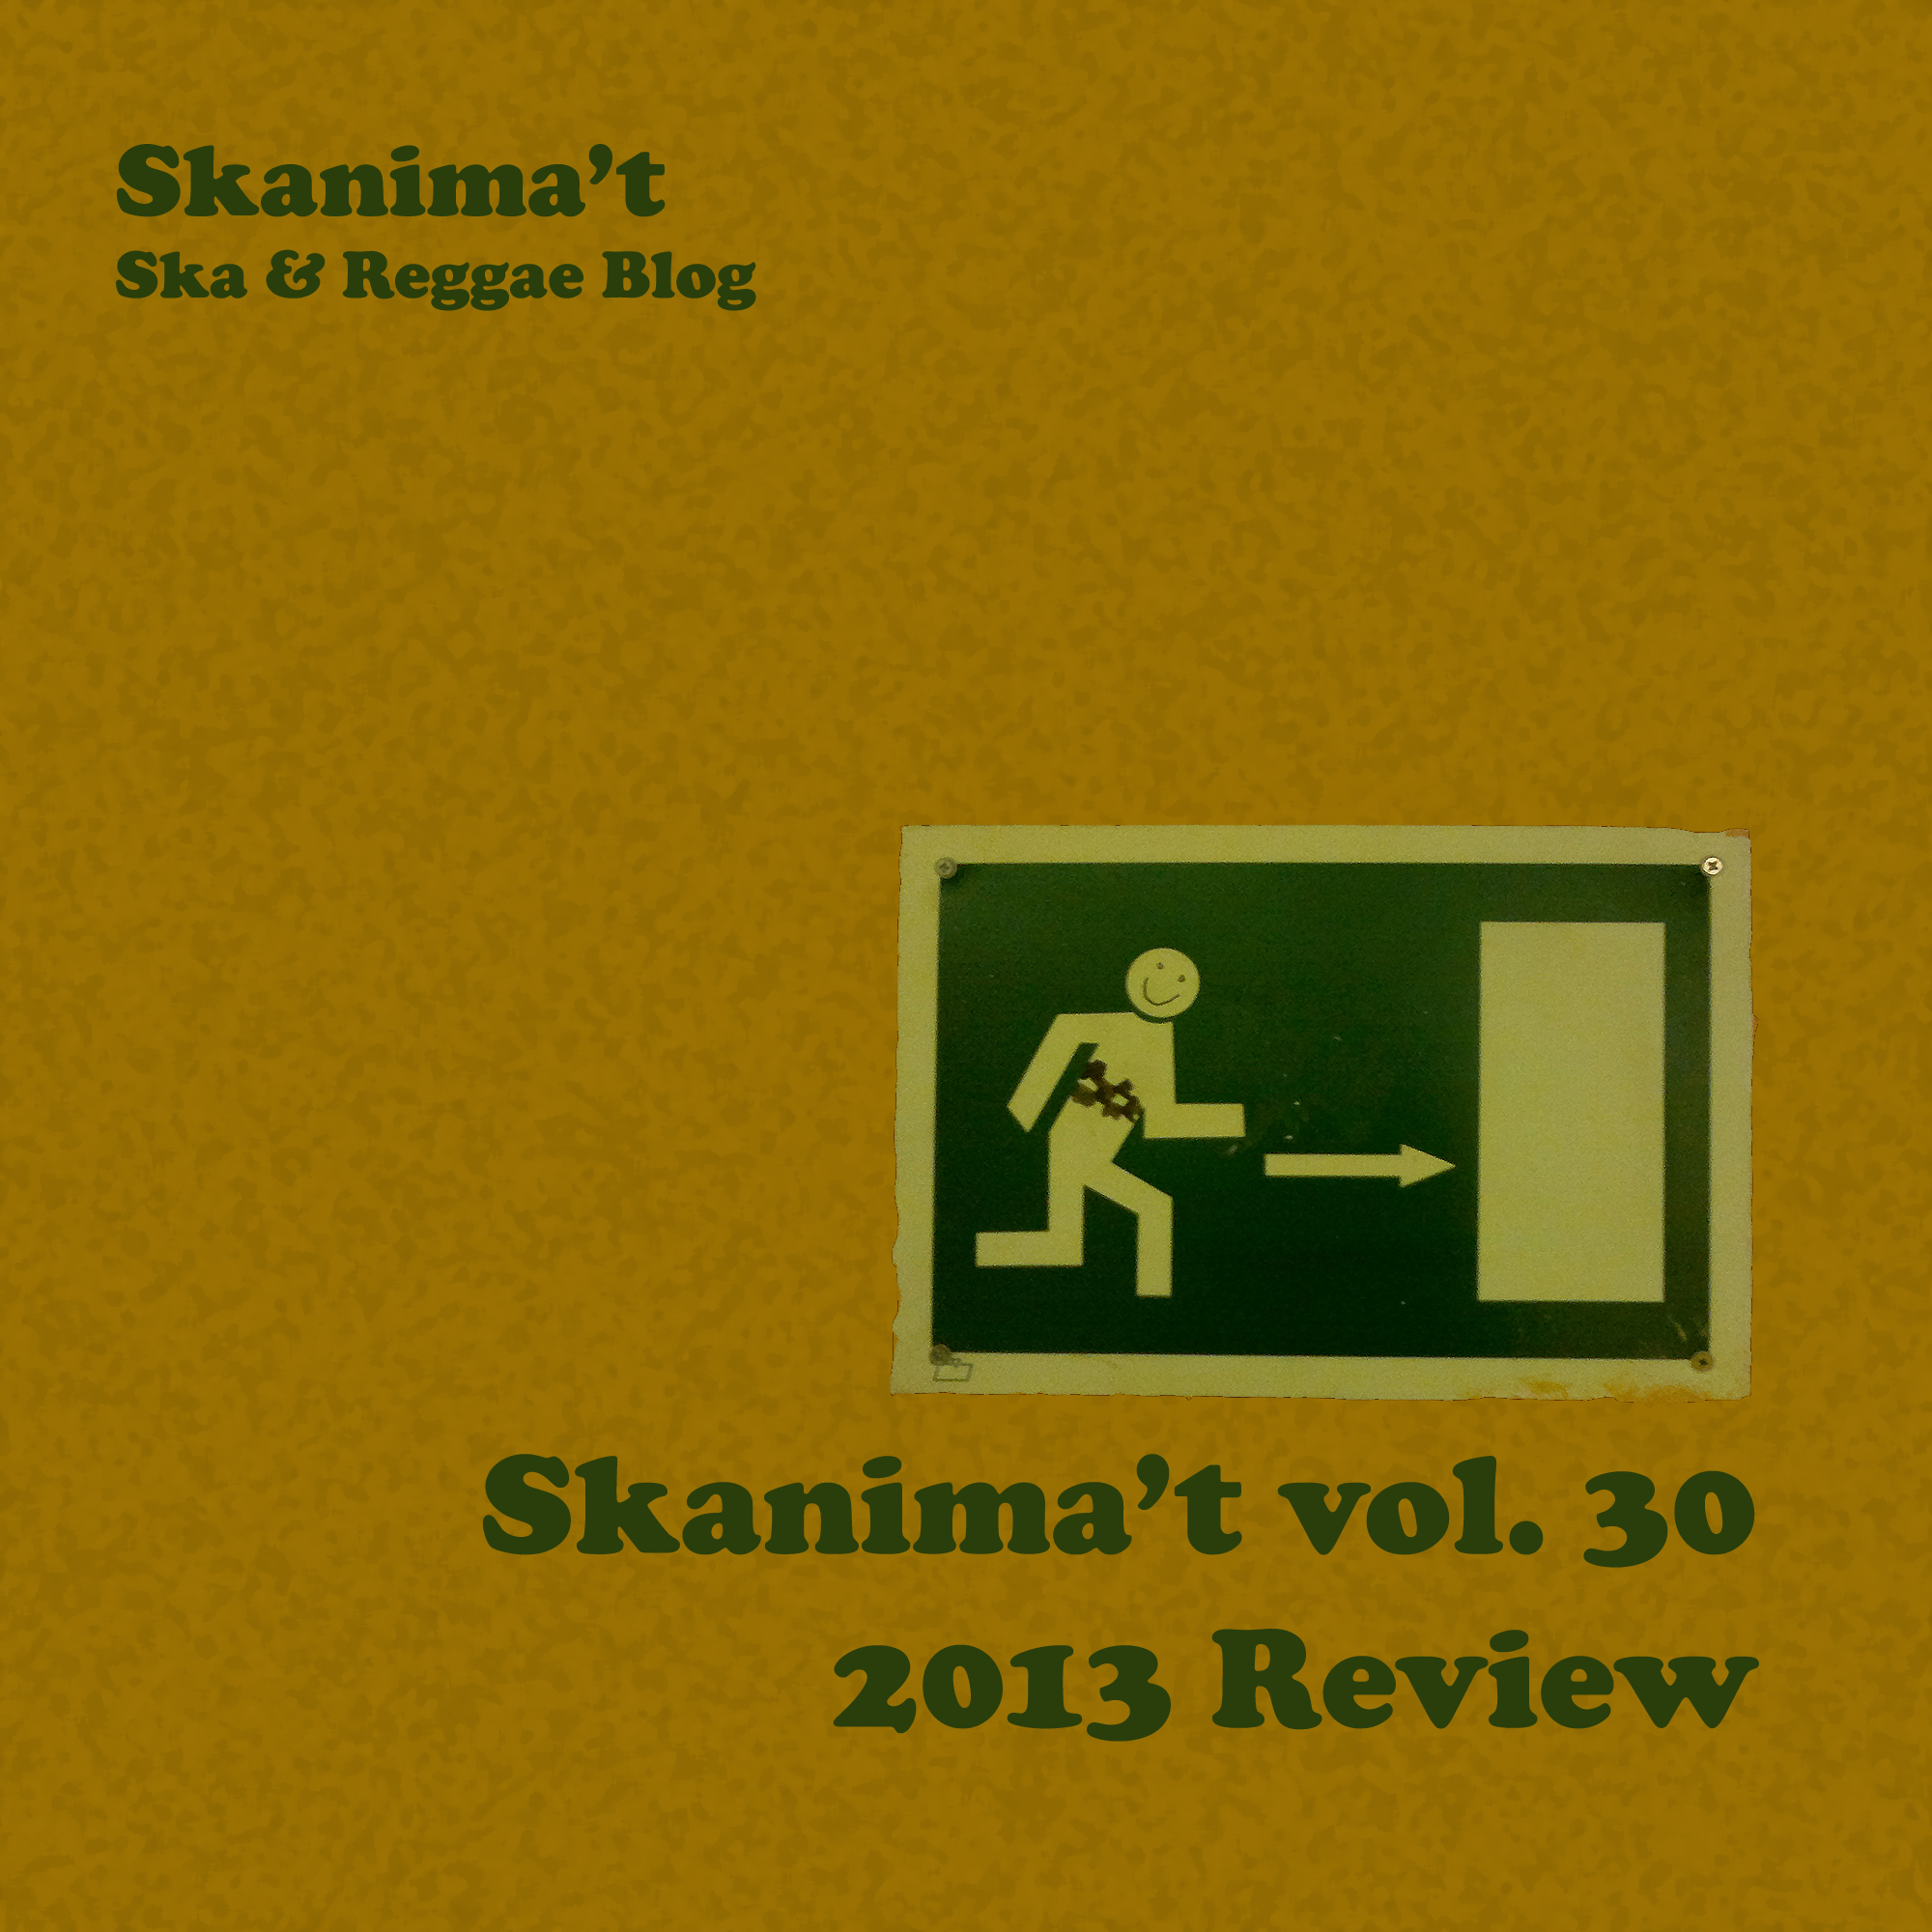 Skanima't vol.29 2012 Review